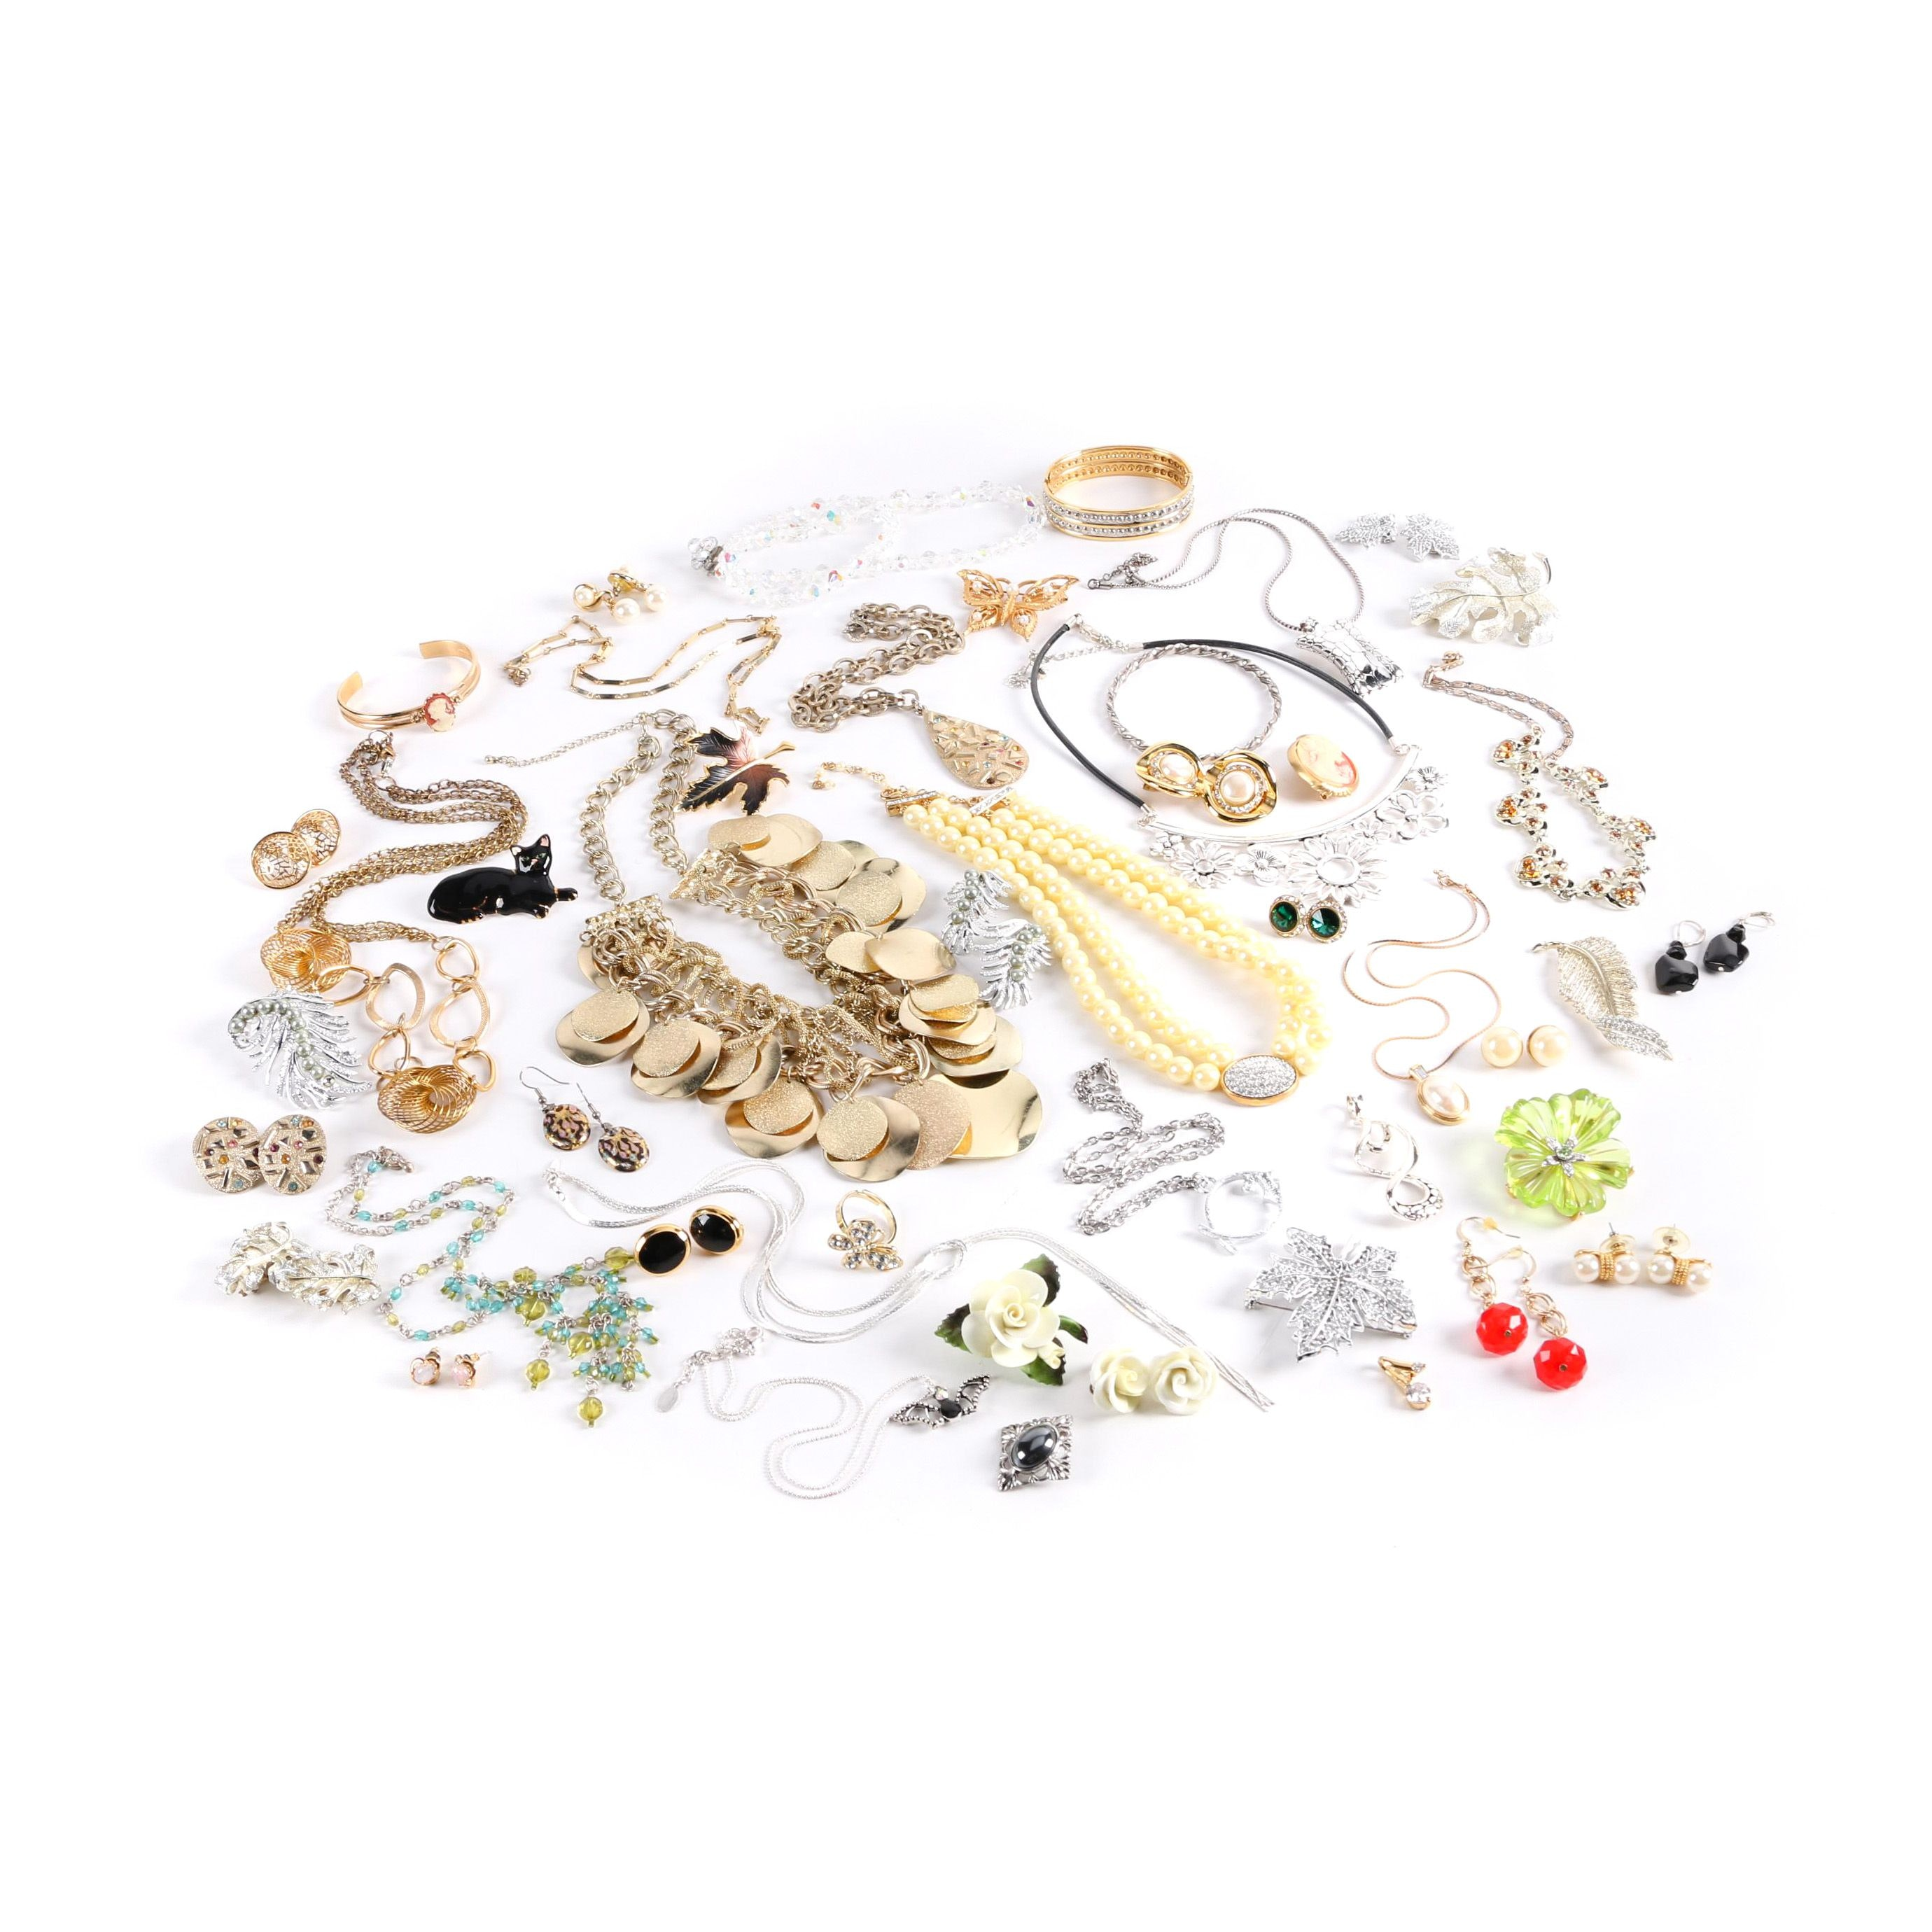 Assortment of Sarah Coventry Jewelry Including Imitation Pearl and Porcelain